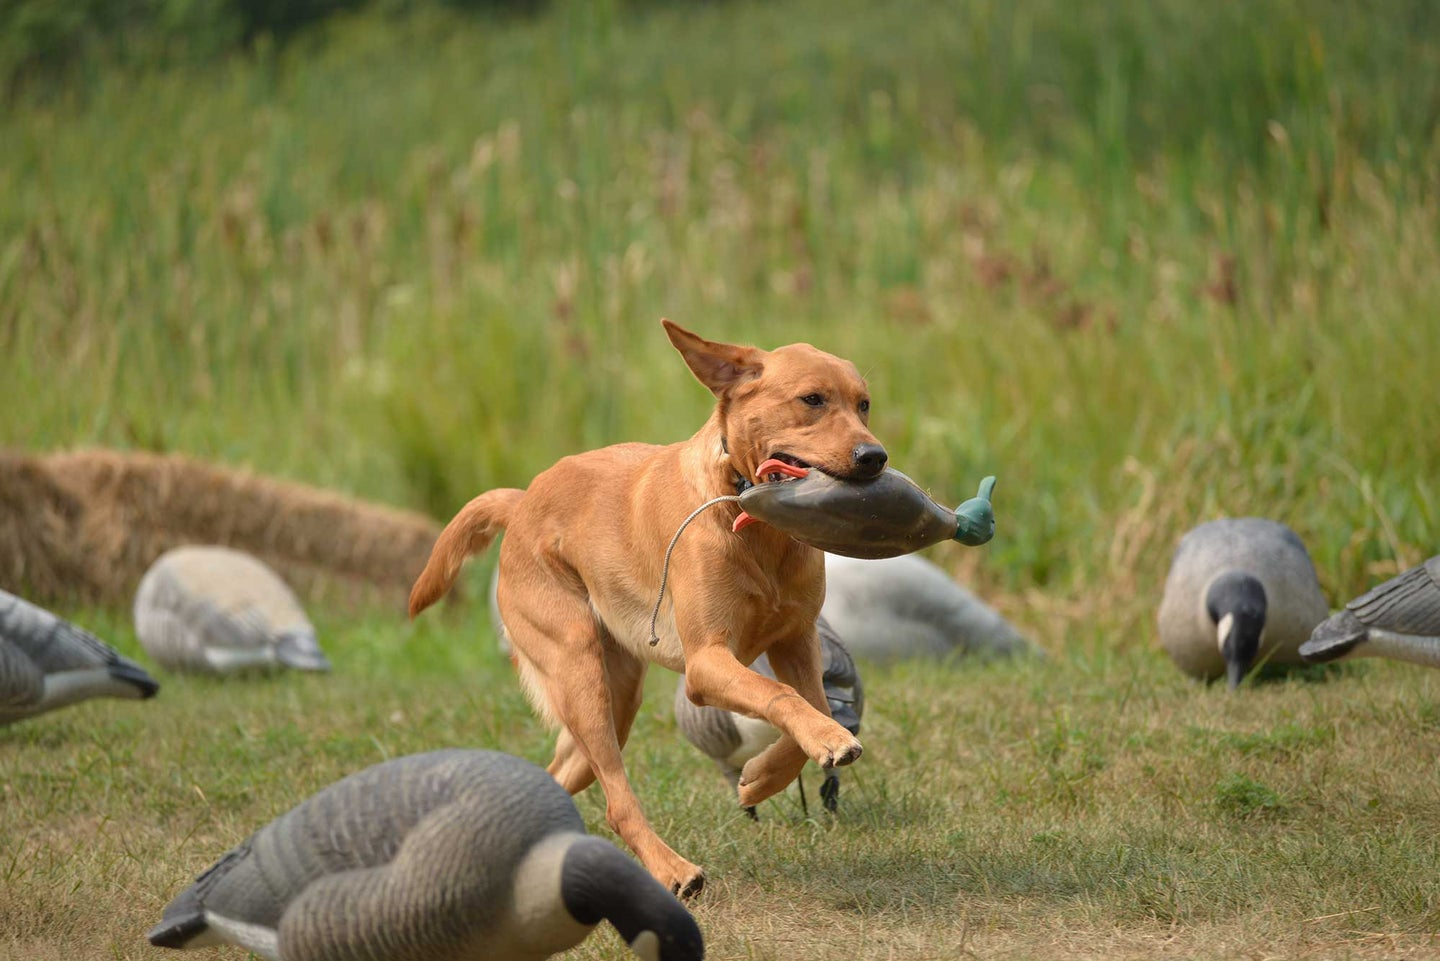 Labrador puppy running with duck in his mouth